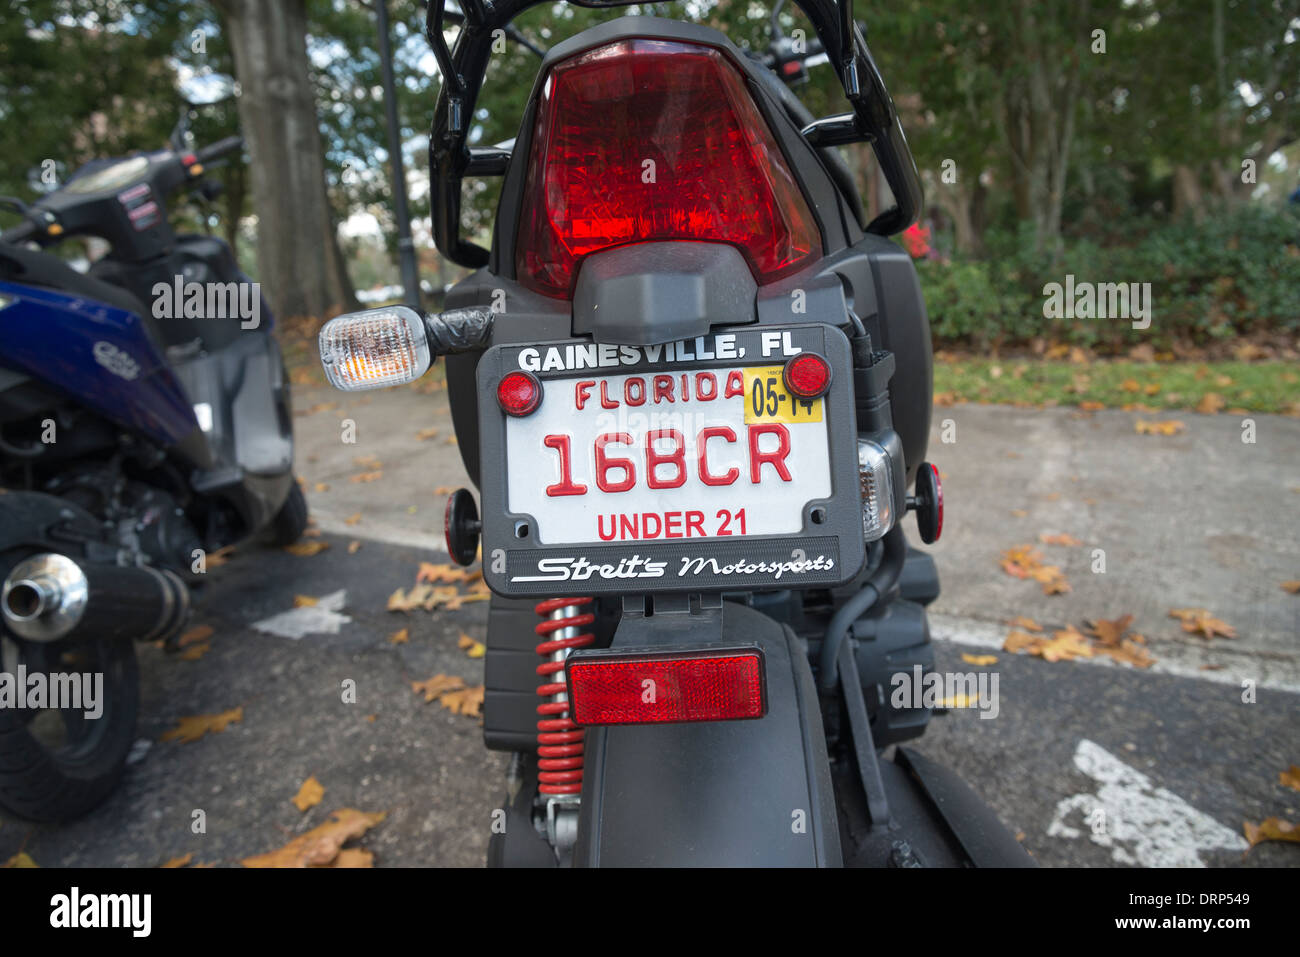 Special Under 21 License Plate On Motor Scooters And Motorcycles On